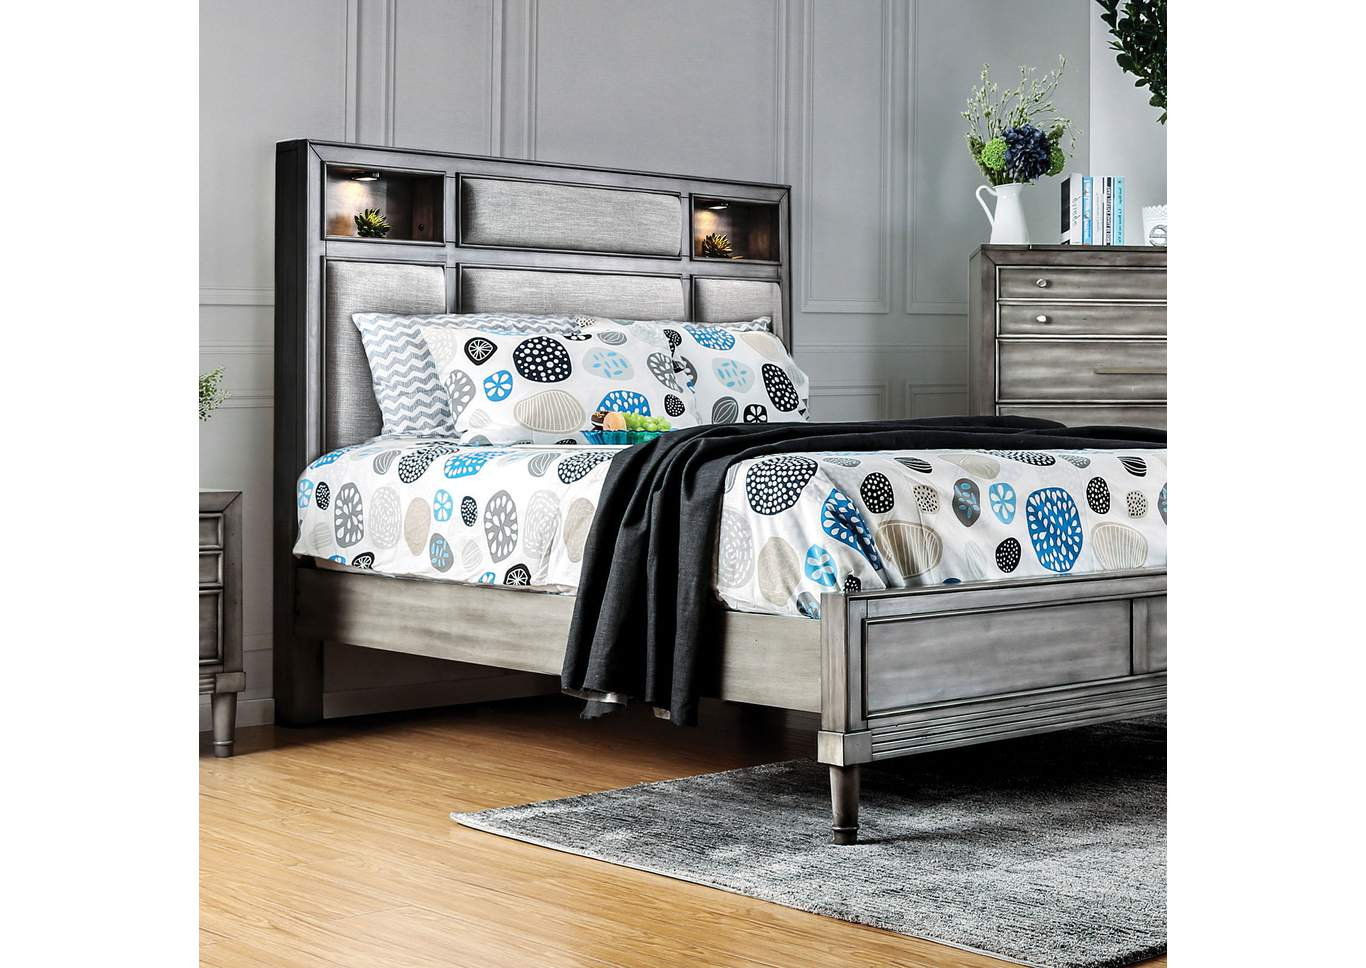 Daphne Gray Queen Bed,Furniture of America